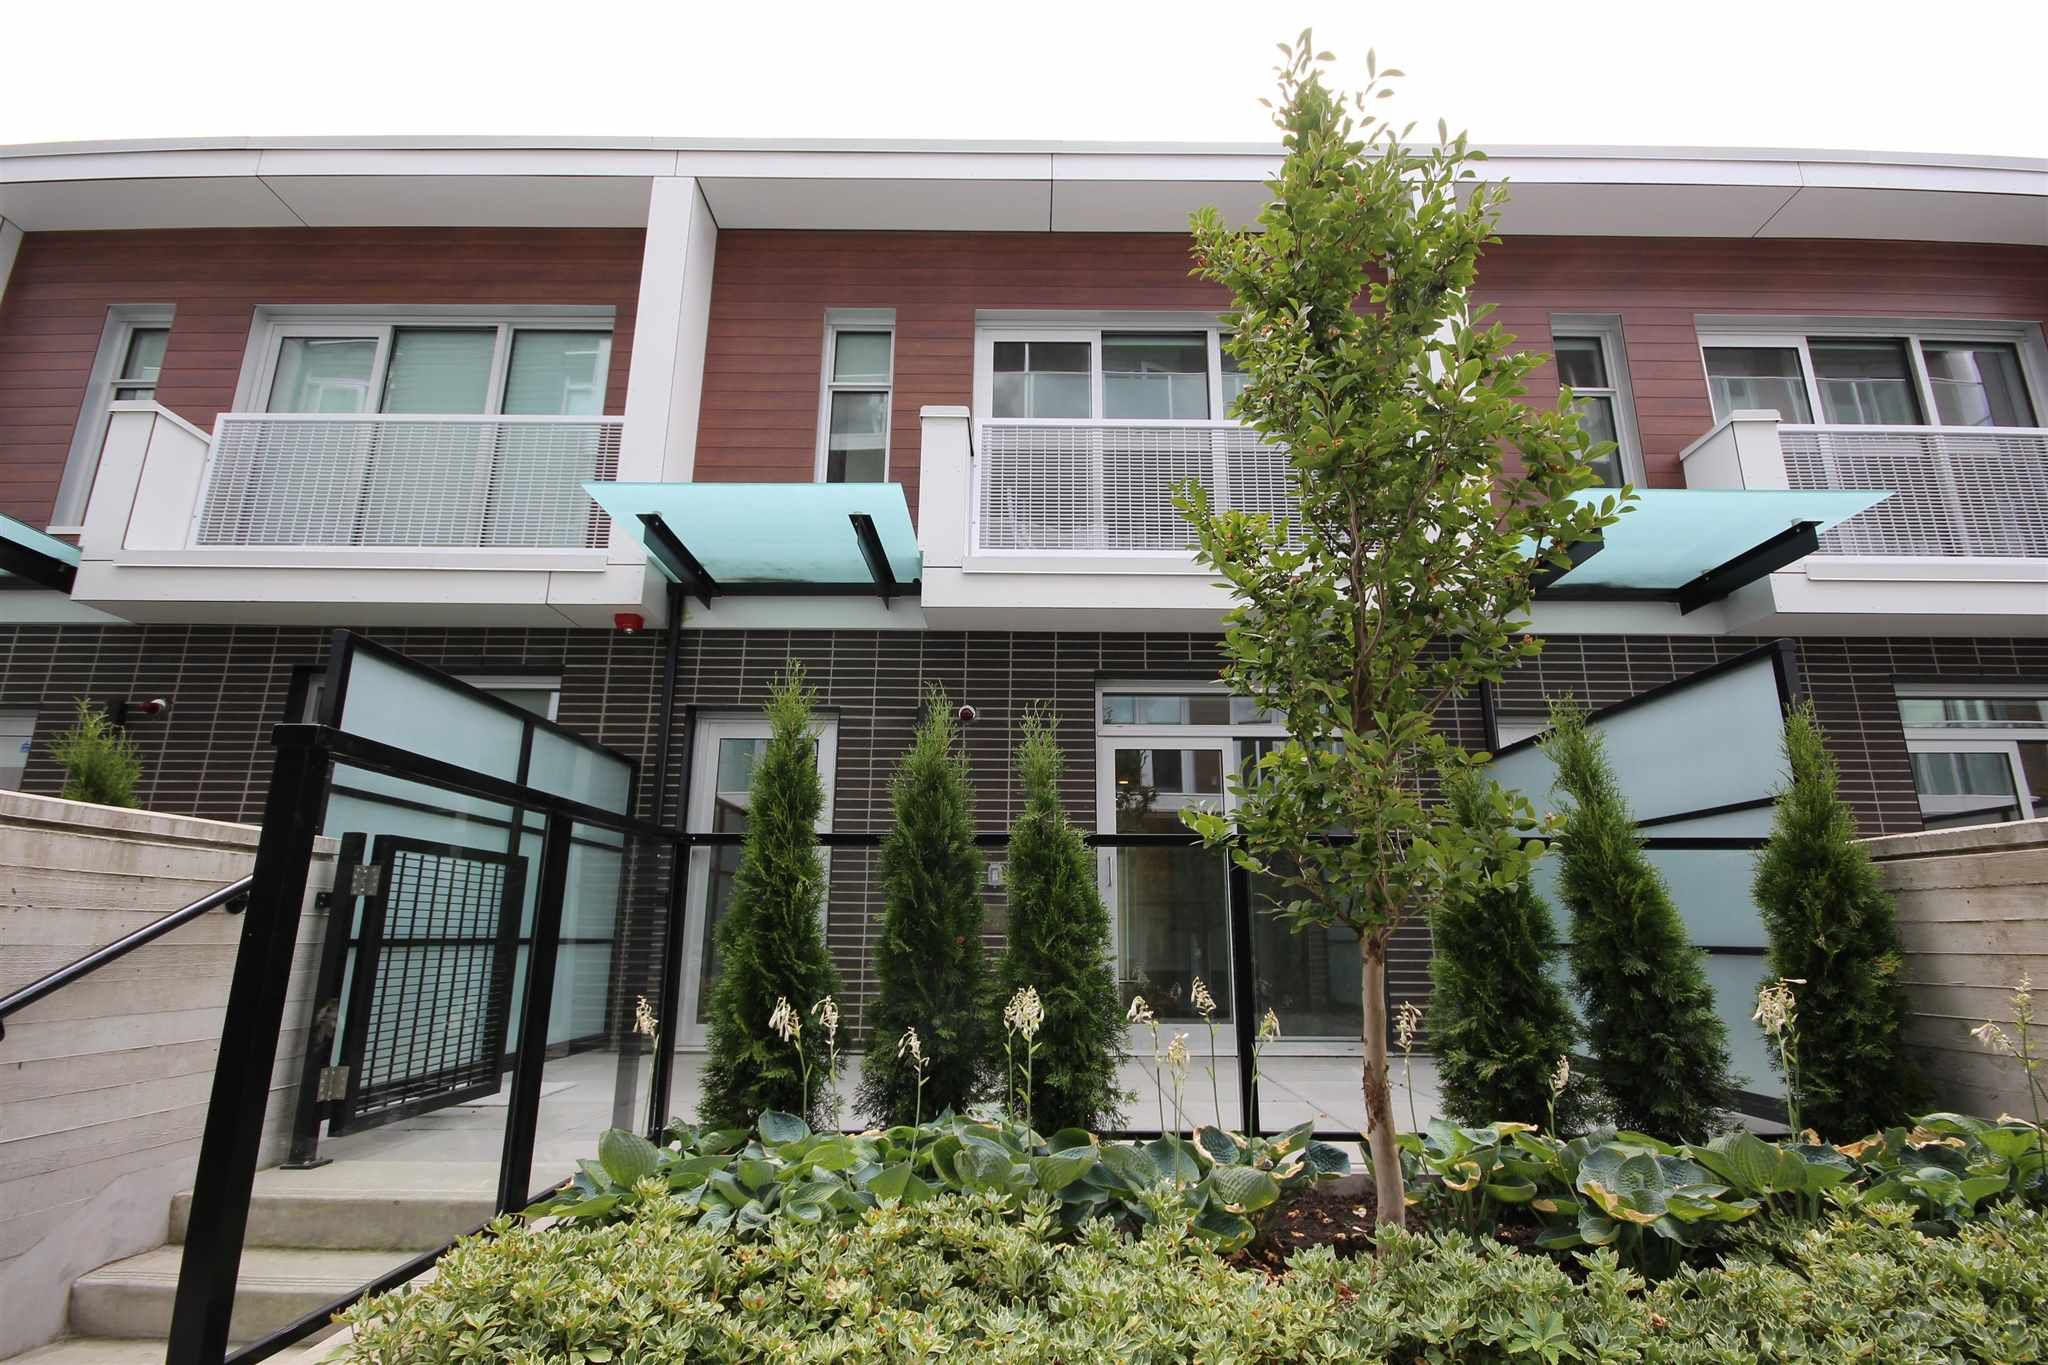 """Main Photo: 532 W KING EDWARD Avenue in Vancouver: Cambie Townhouse for sale in """"CAMBIE + KING EDWARD"""" (Vancouver West)  : MLS®# R2593890"""